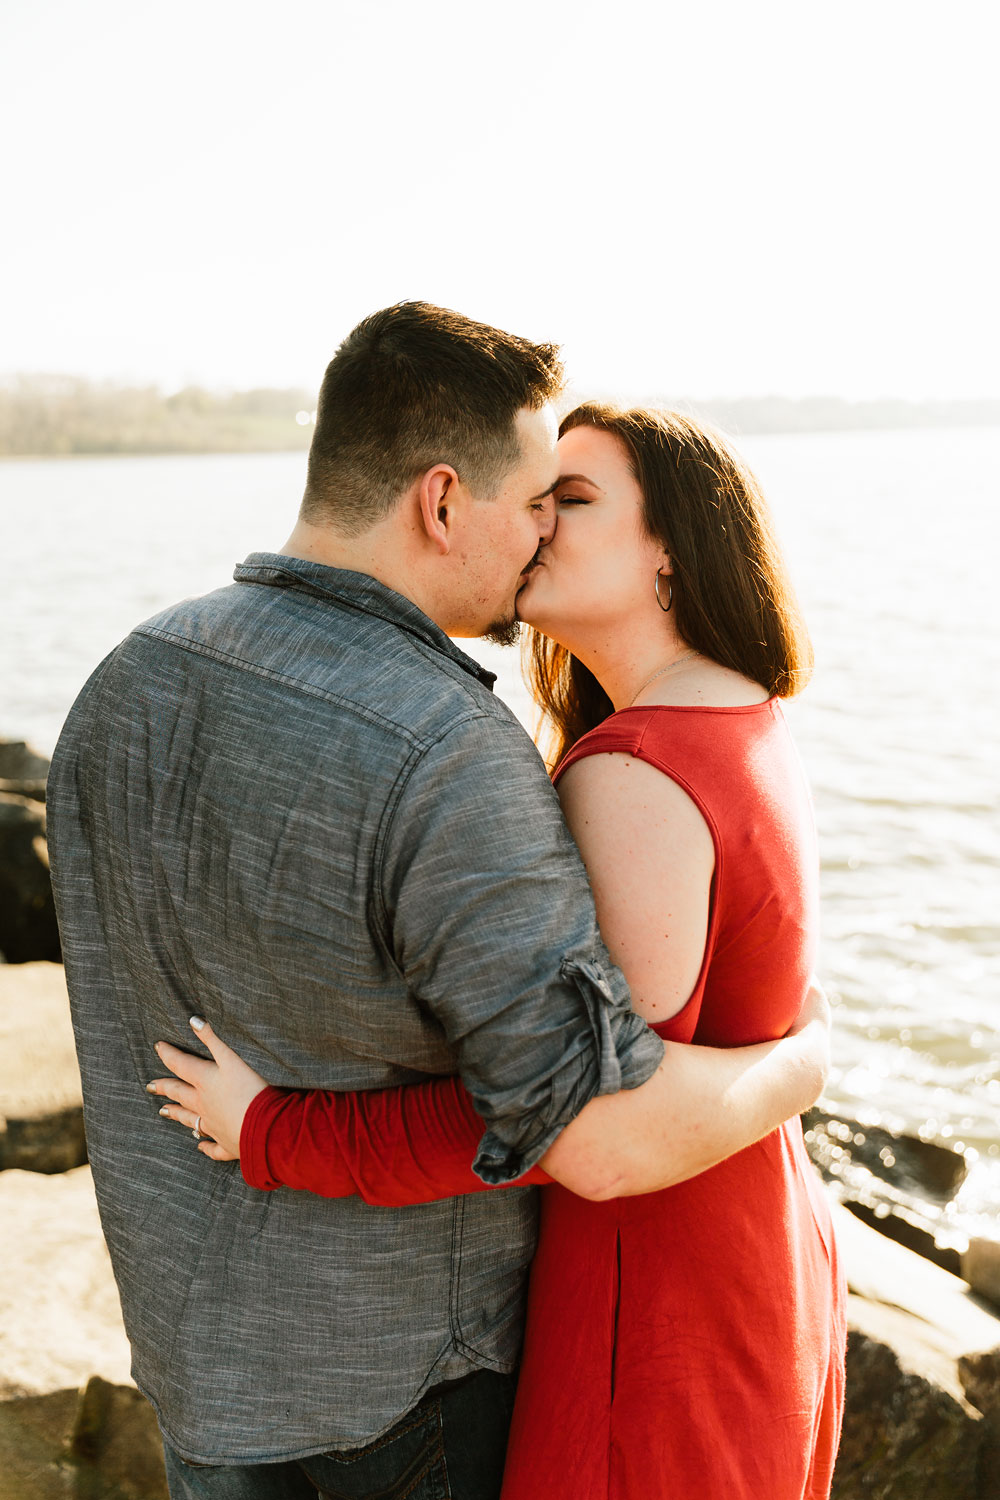 edgewater-beach-engagement-session-wendy-park-cleveland-wedding-photographers-2.jpg